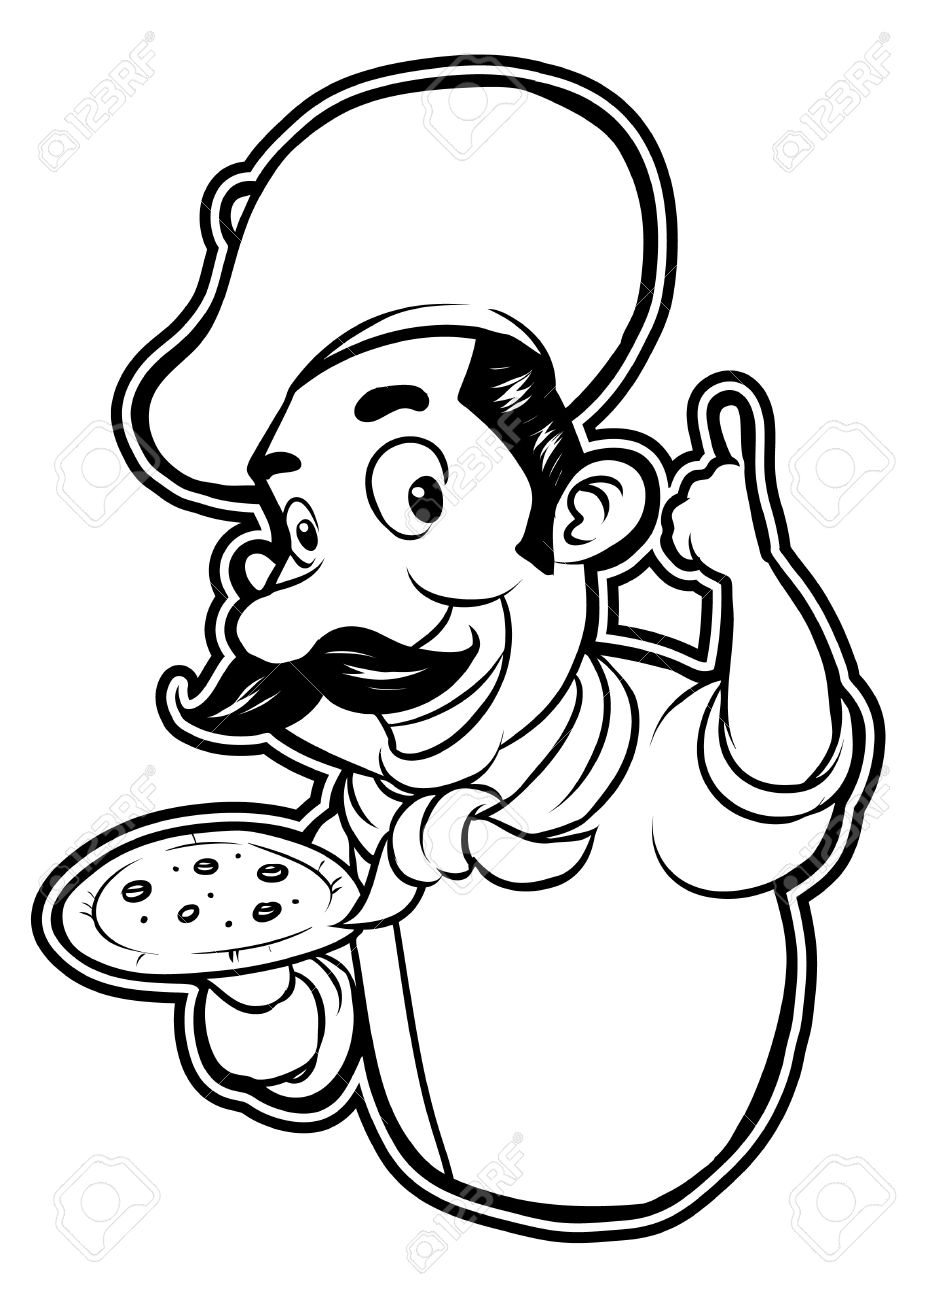 black and white clipart pizza chef royalty free cliparts vectors rh 123rf com pizza boxes clipart black and white whole pizza clipart black and white